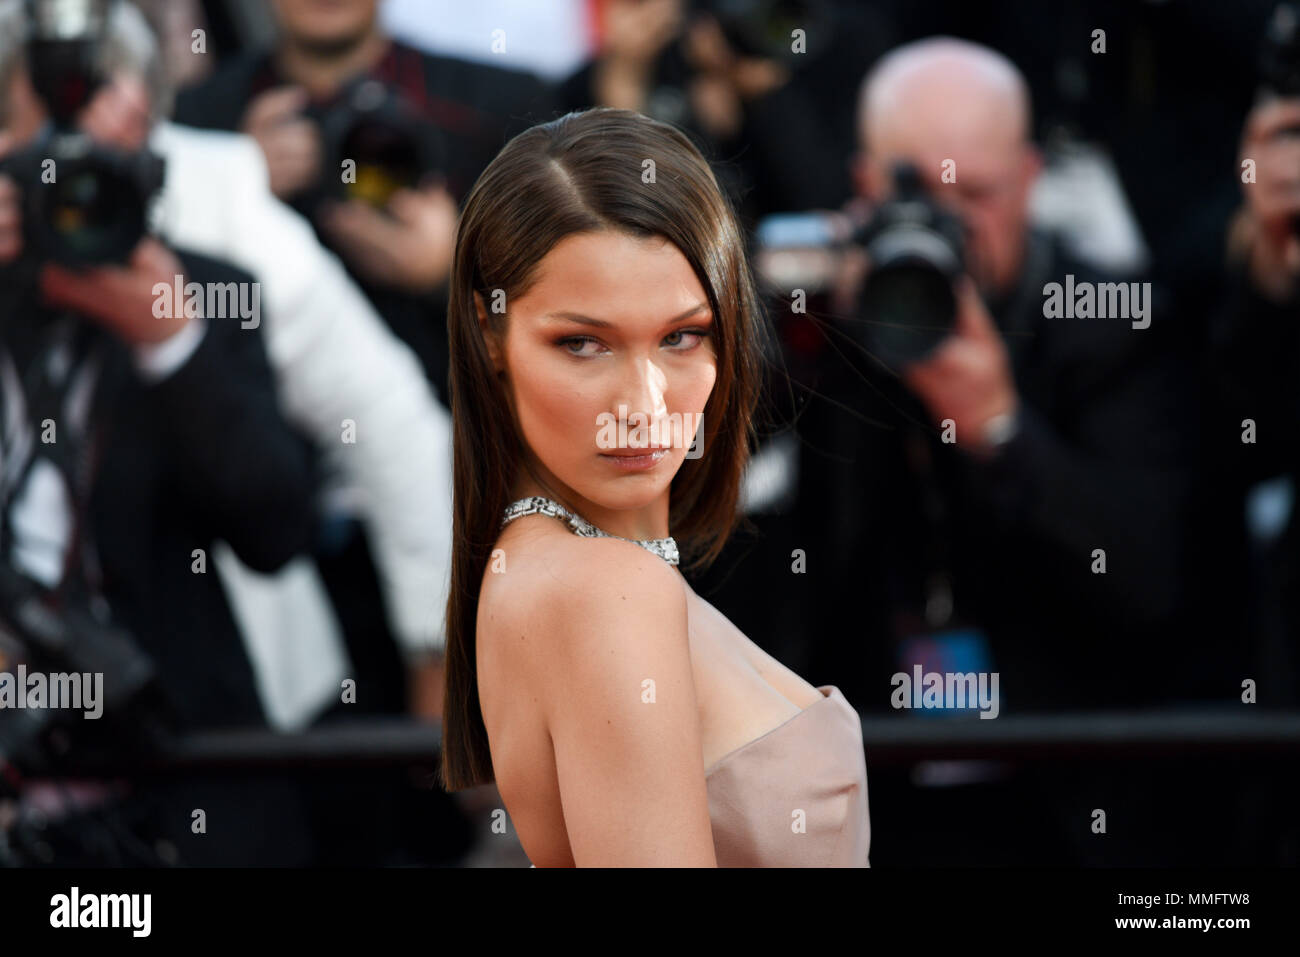 Fashion style Buzz link bella hadid signs img for girls